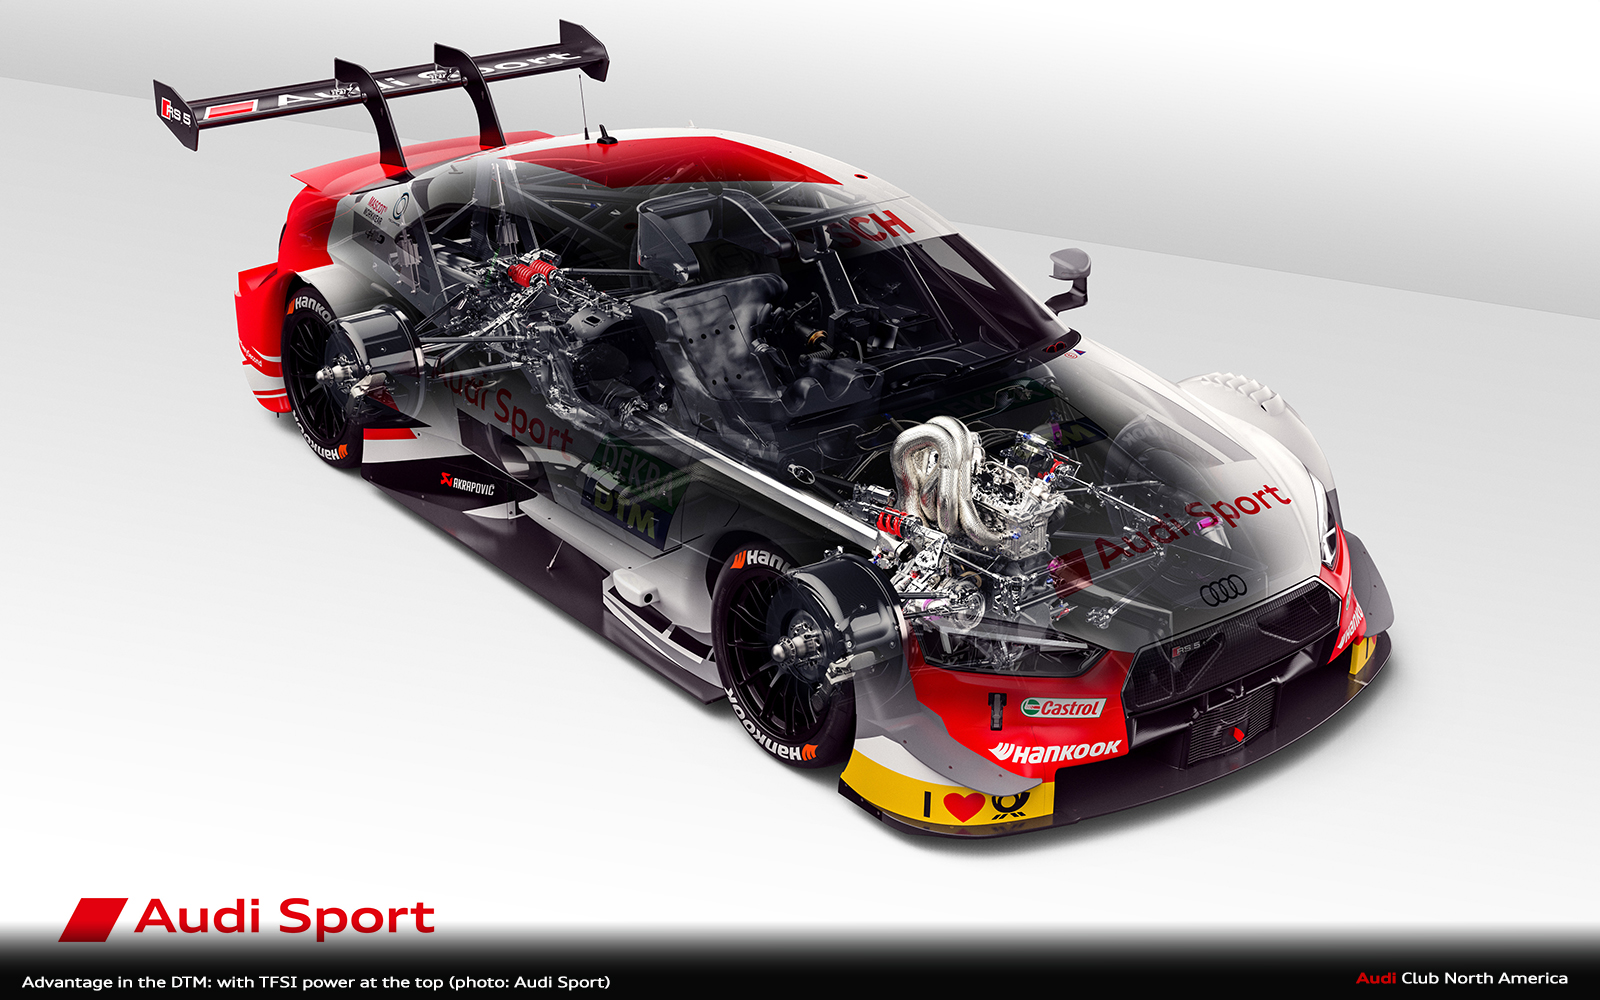 Advantage in the DTM: With TFSI Power at the Top